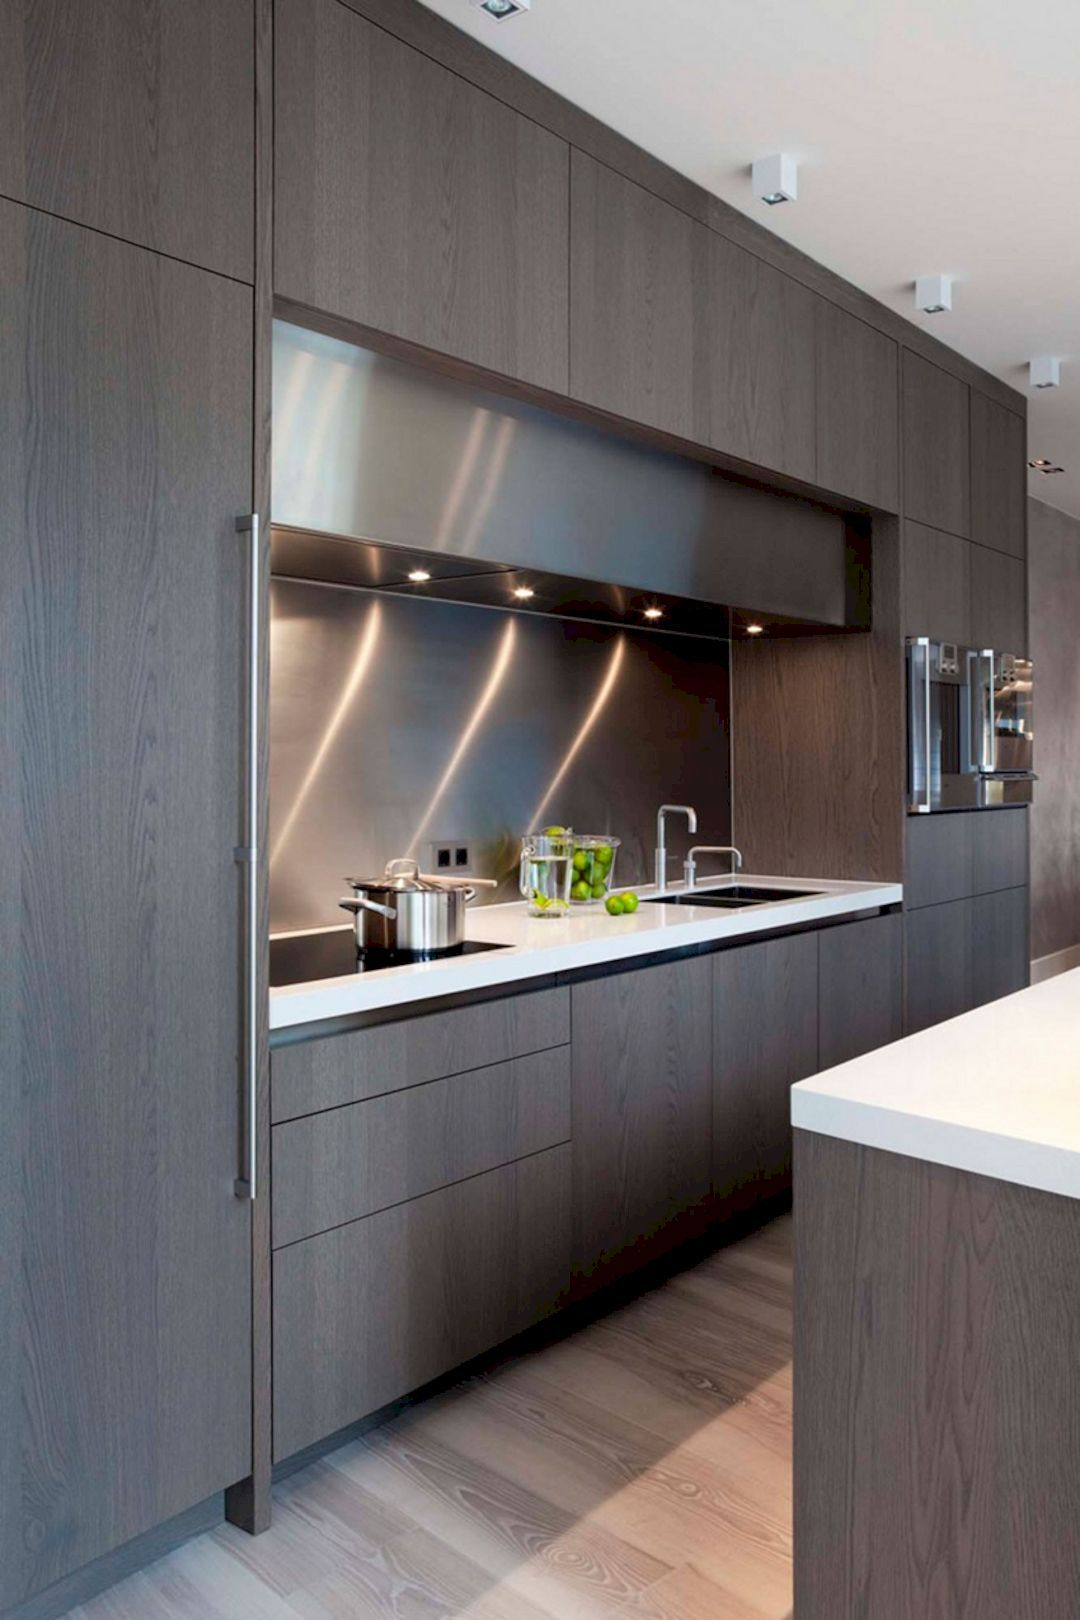 Attractive Stylish Modern Kitchen Cabinet: 127 Design Ideas  Https://www.futuristarchitecture.